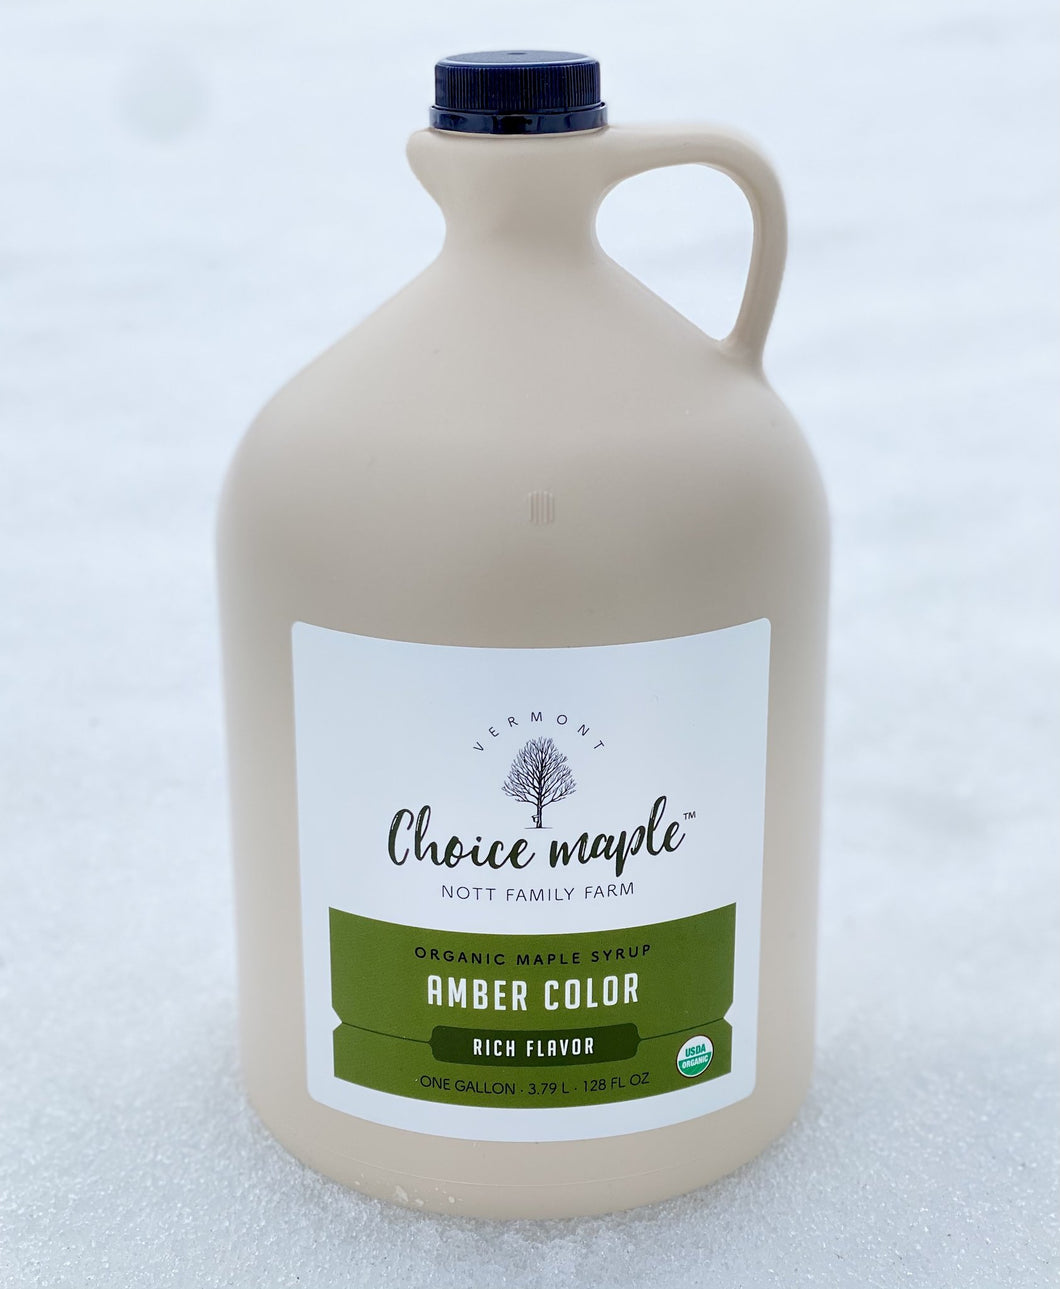 Organic Maple Syrup, 2 One Gallon Case